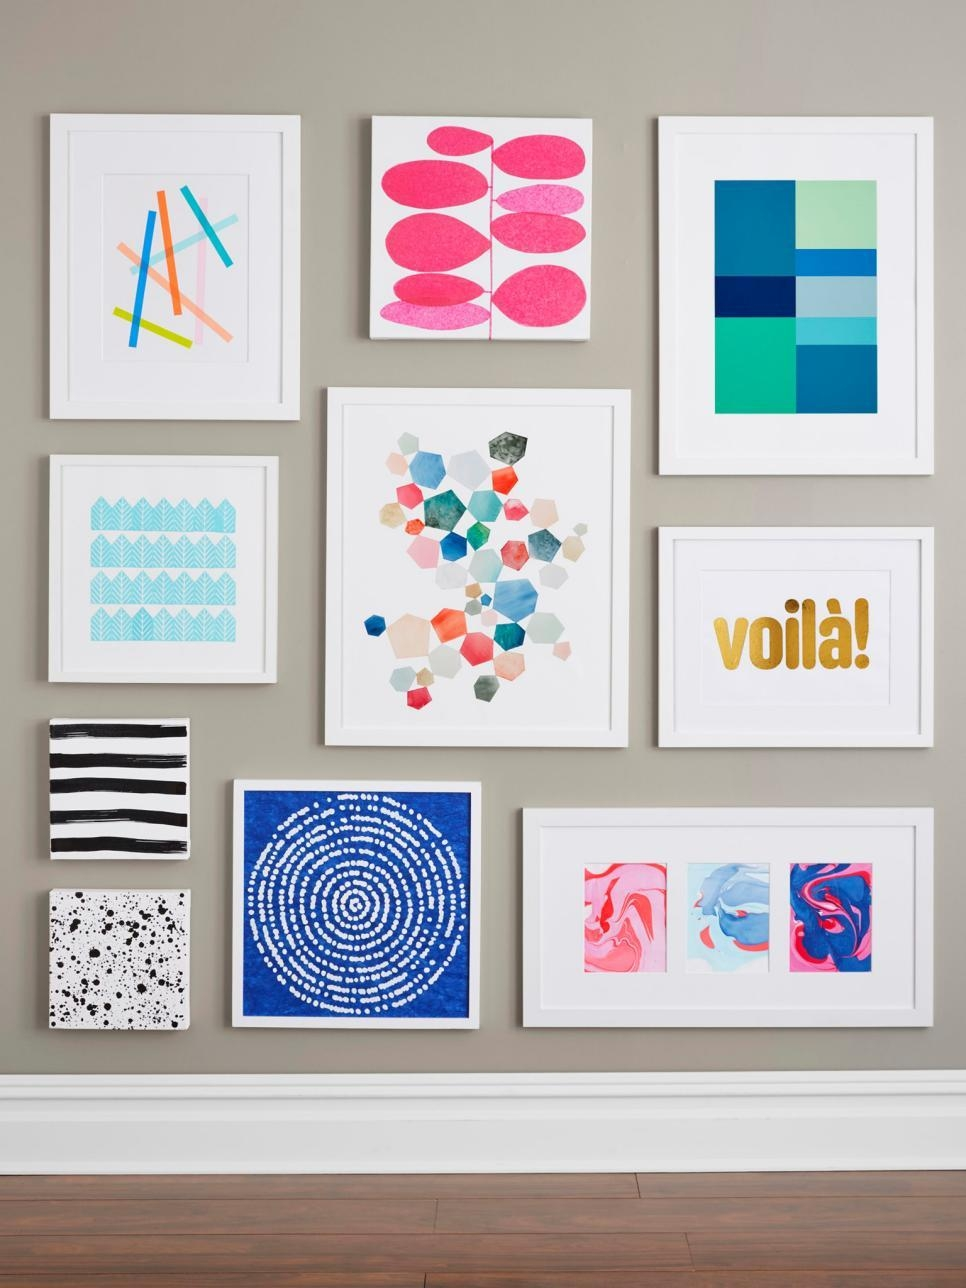 9 Easy Diy Wall Art Ideas | Hgtv With Graphic Design Wall Art (Image 1 of 20)